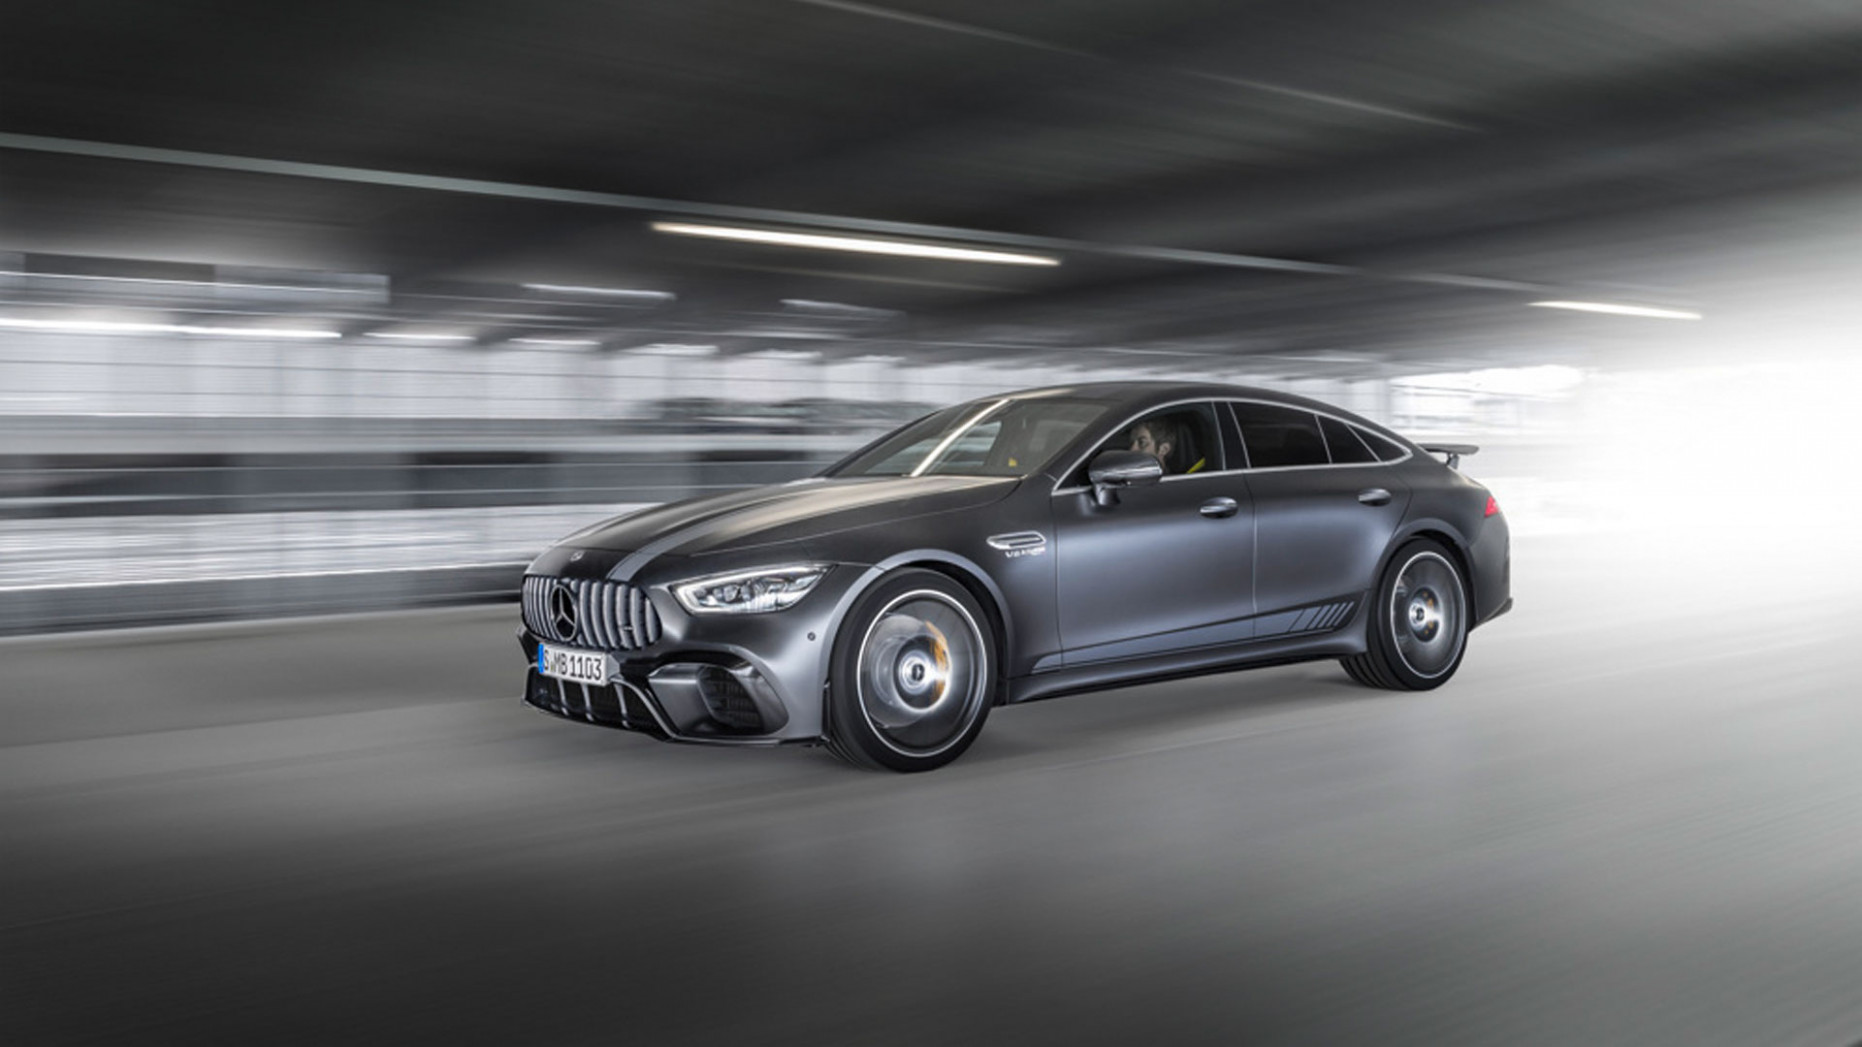 Die neue Mercedes-AMG GT 8 S 8MATIC+ Edition 8 - 2020 mercedes amg gt 4 door coupe